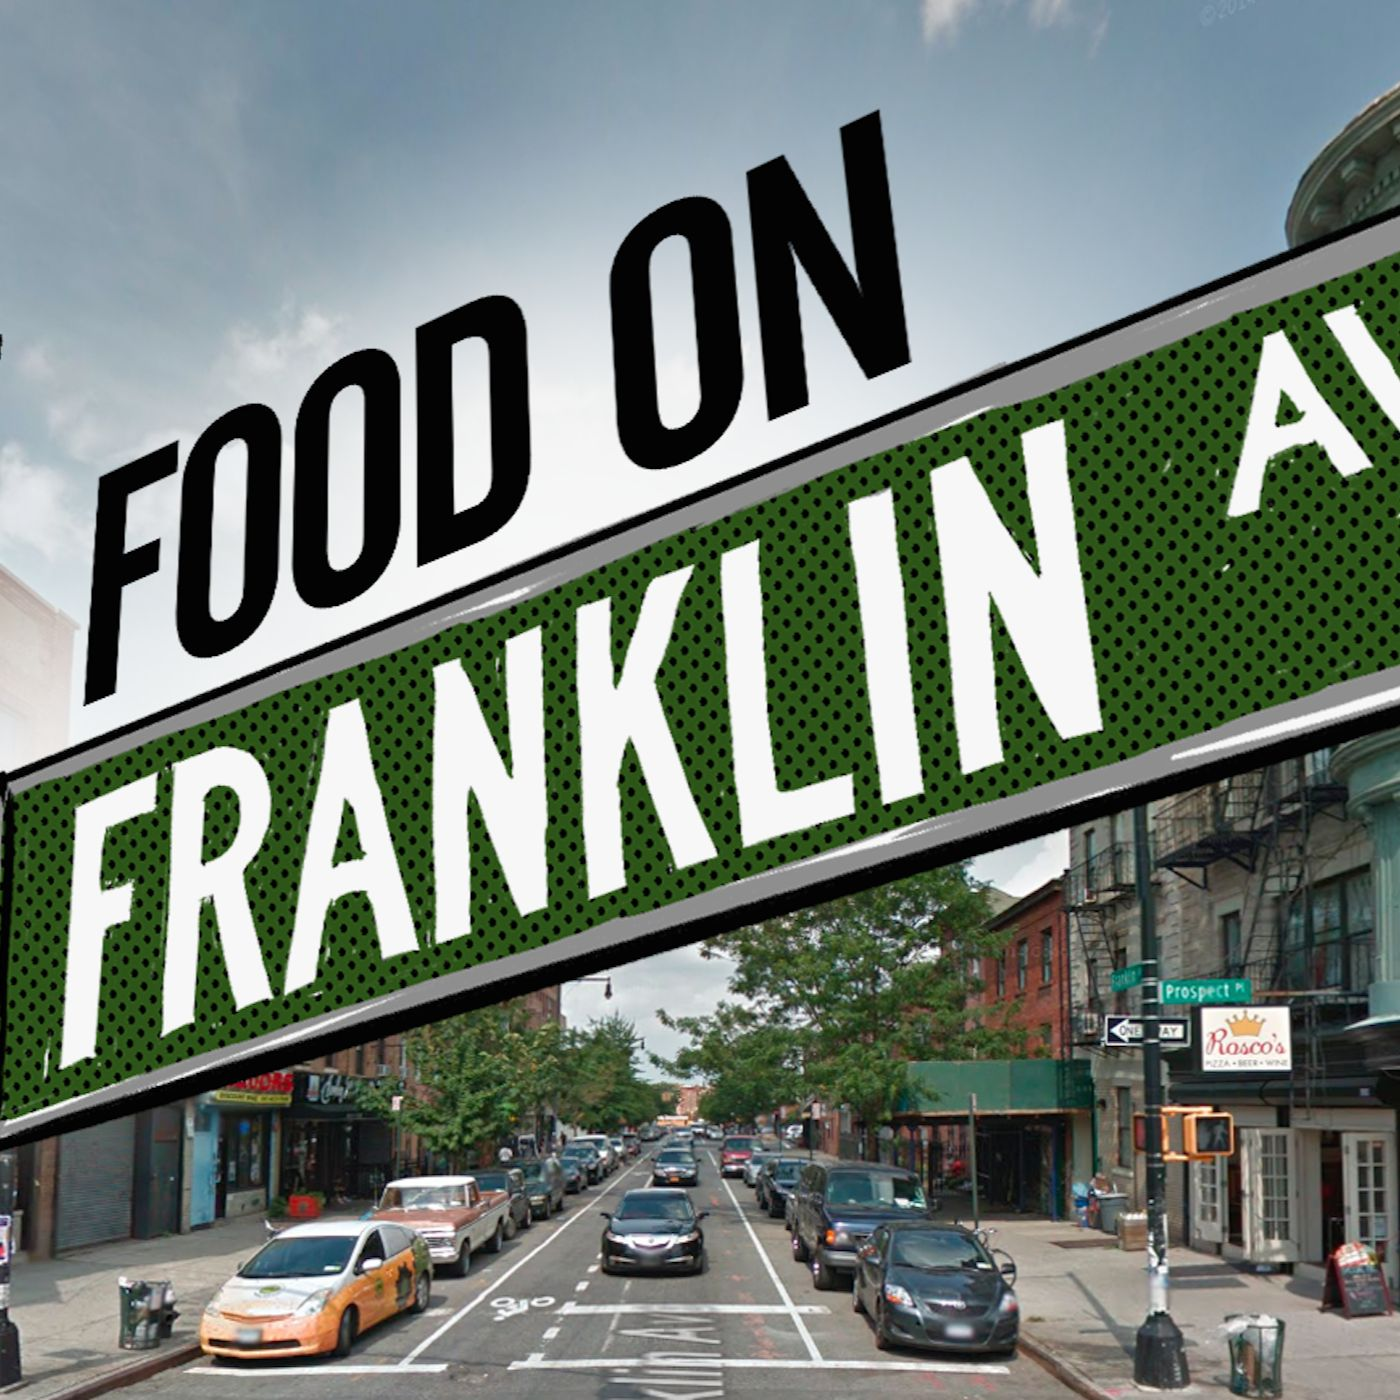 Food on Franklin